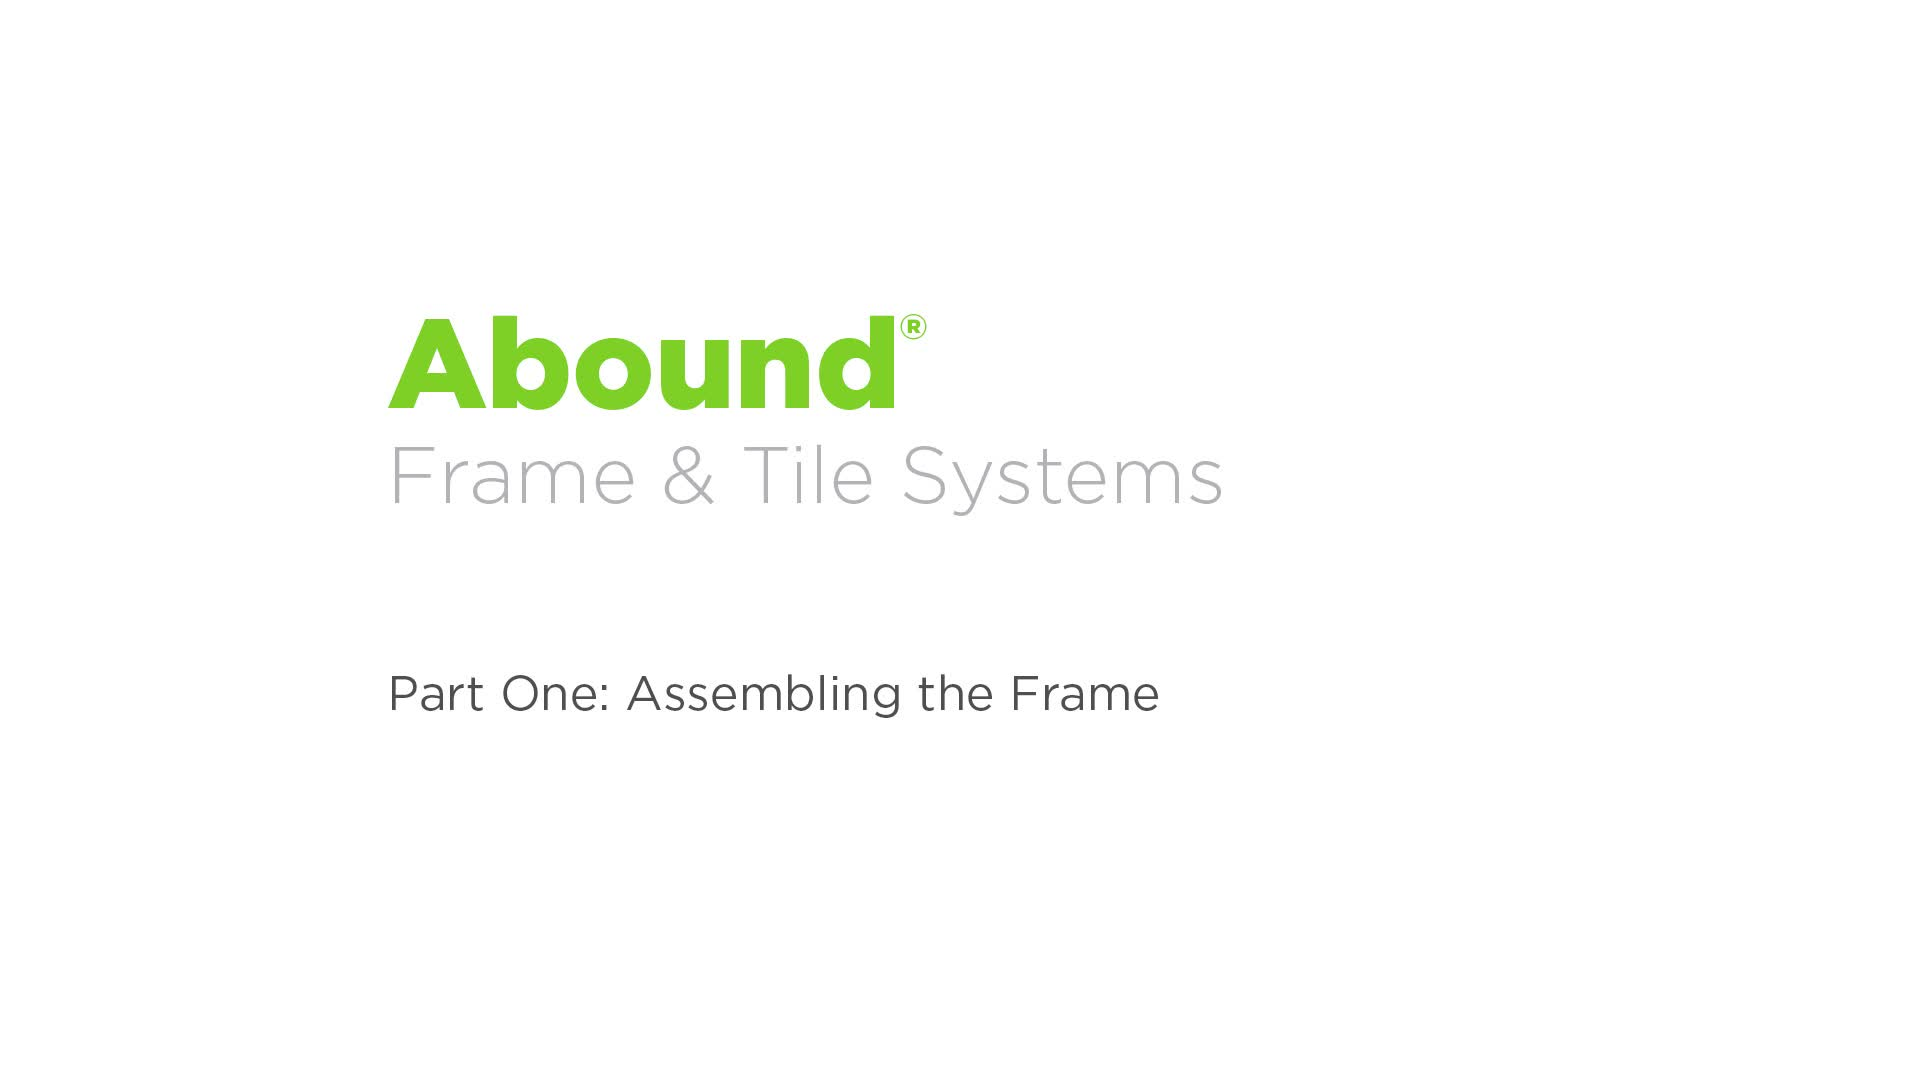 Abound Installation - Part 1: Assembling the Frame video link